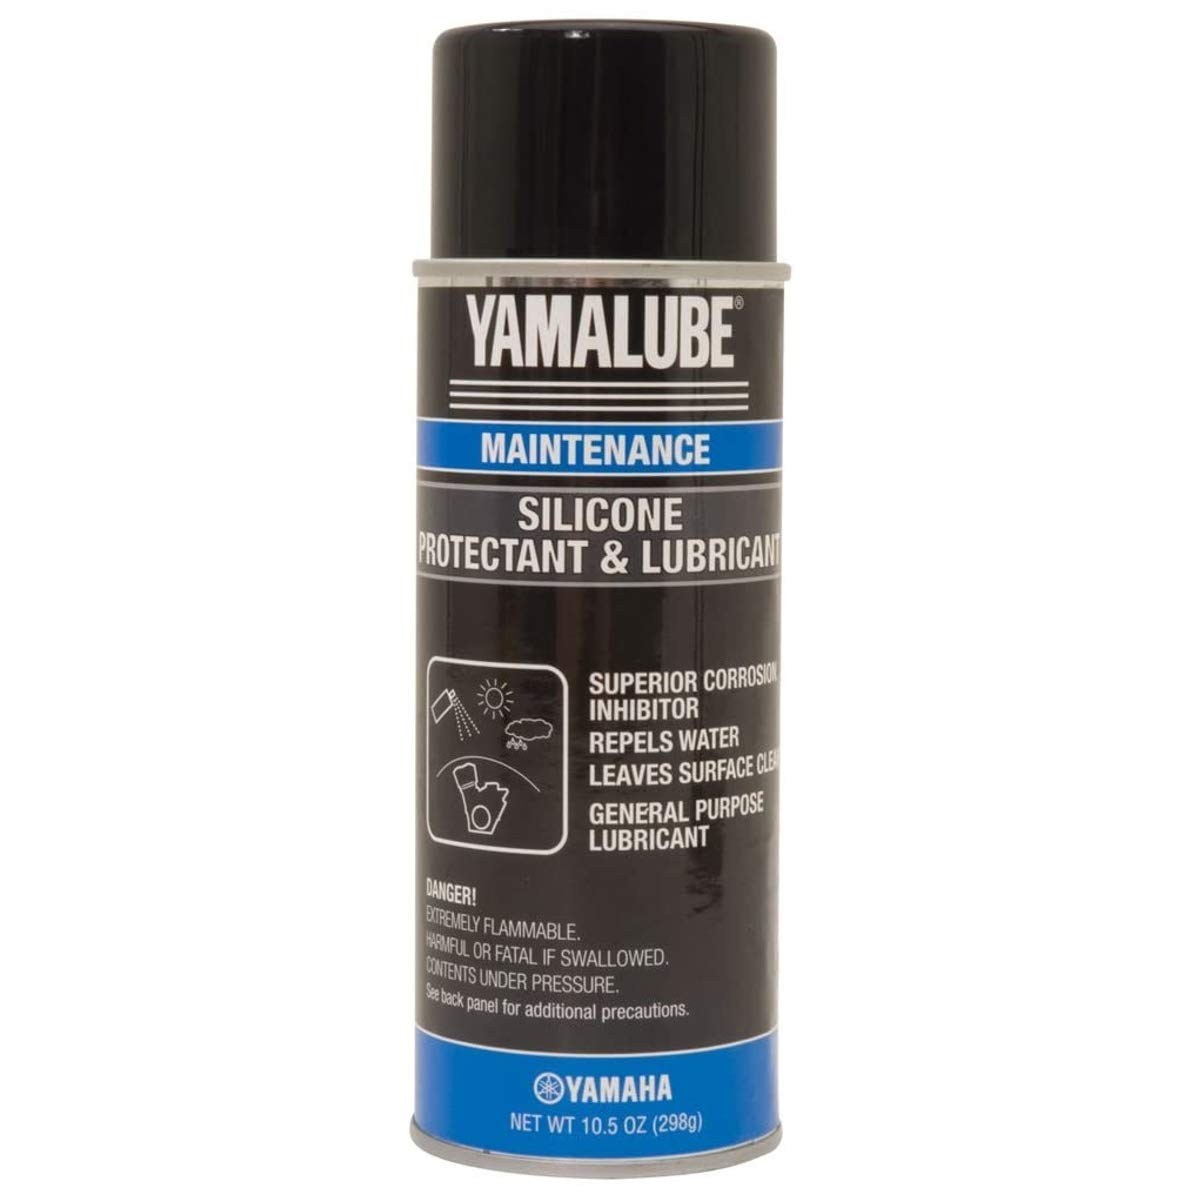 Yamaha ACC-SLCNS-PR-AY Silicone Spray Protectant & Lubricant